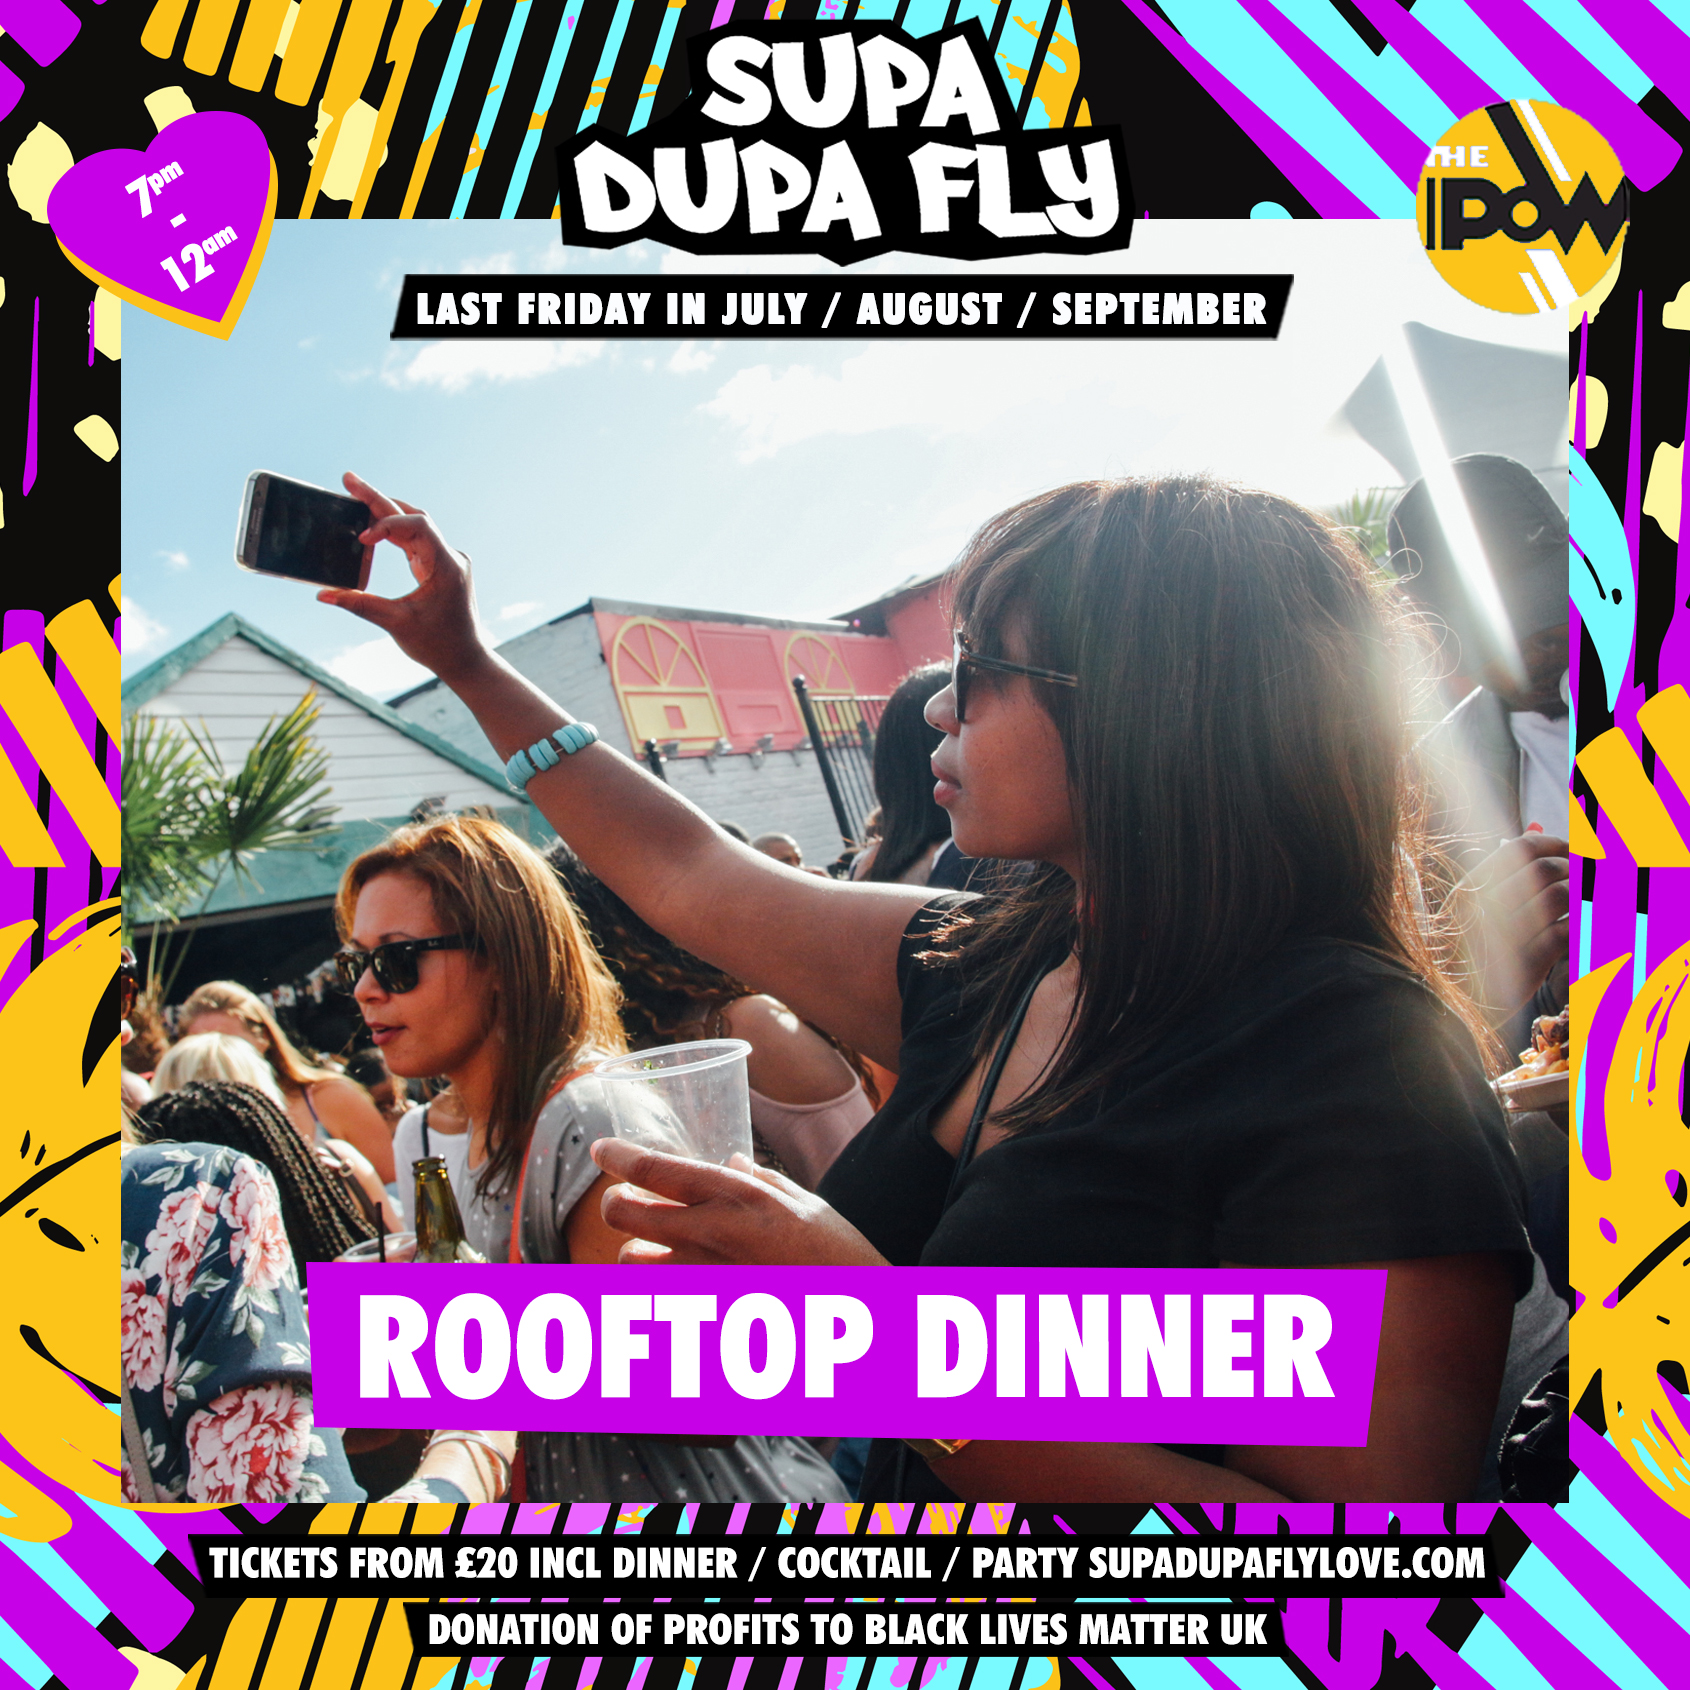 Supa Dupa Fly x Rooftop Dinner